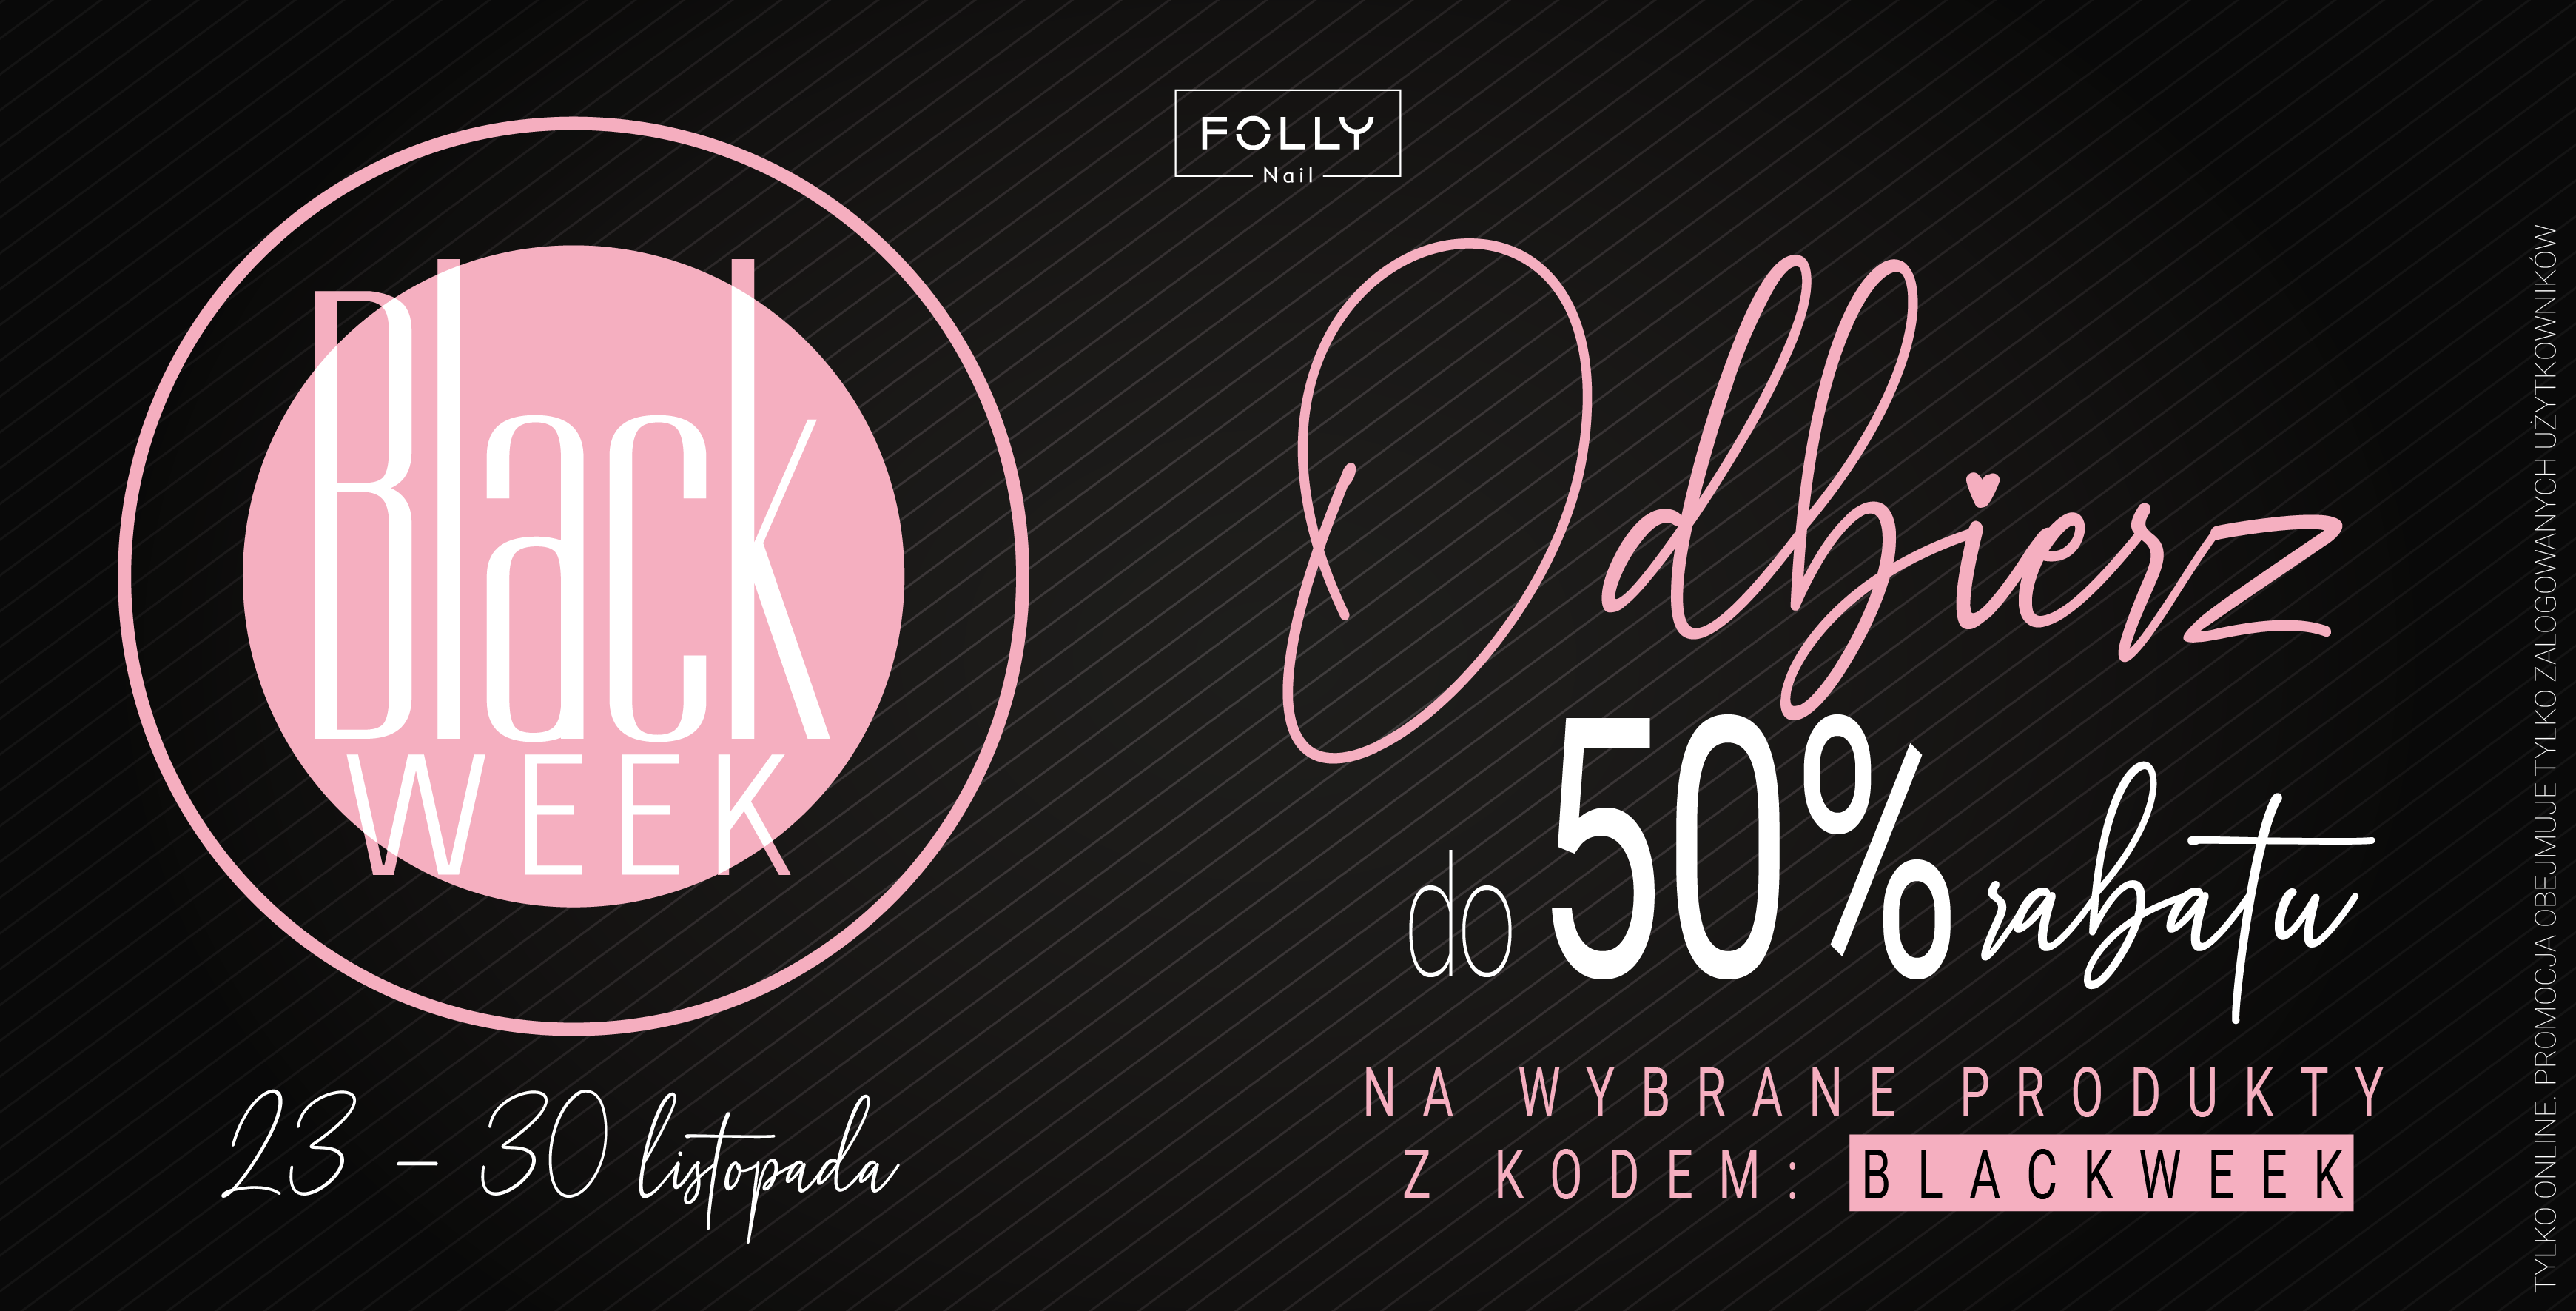 black friday black week follynail promocja rabat